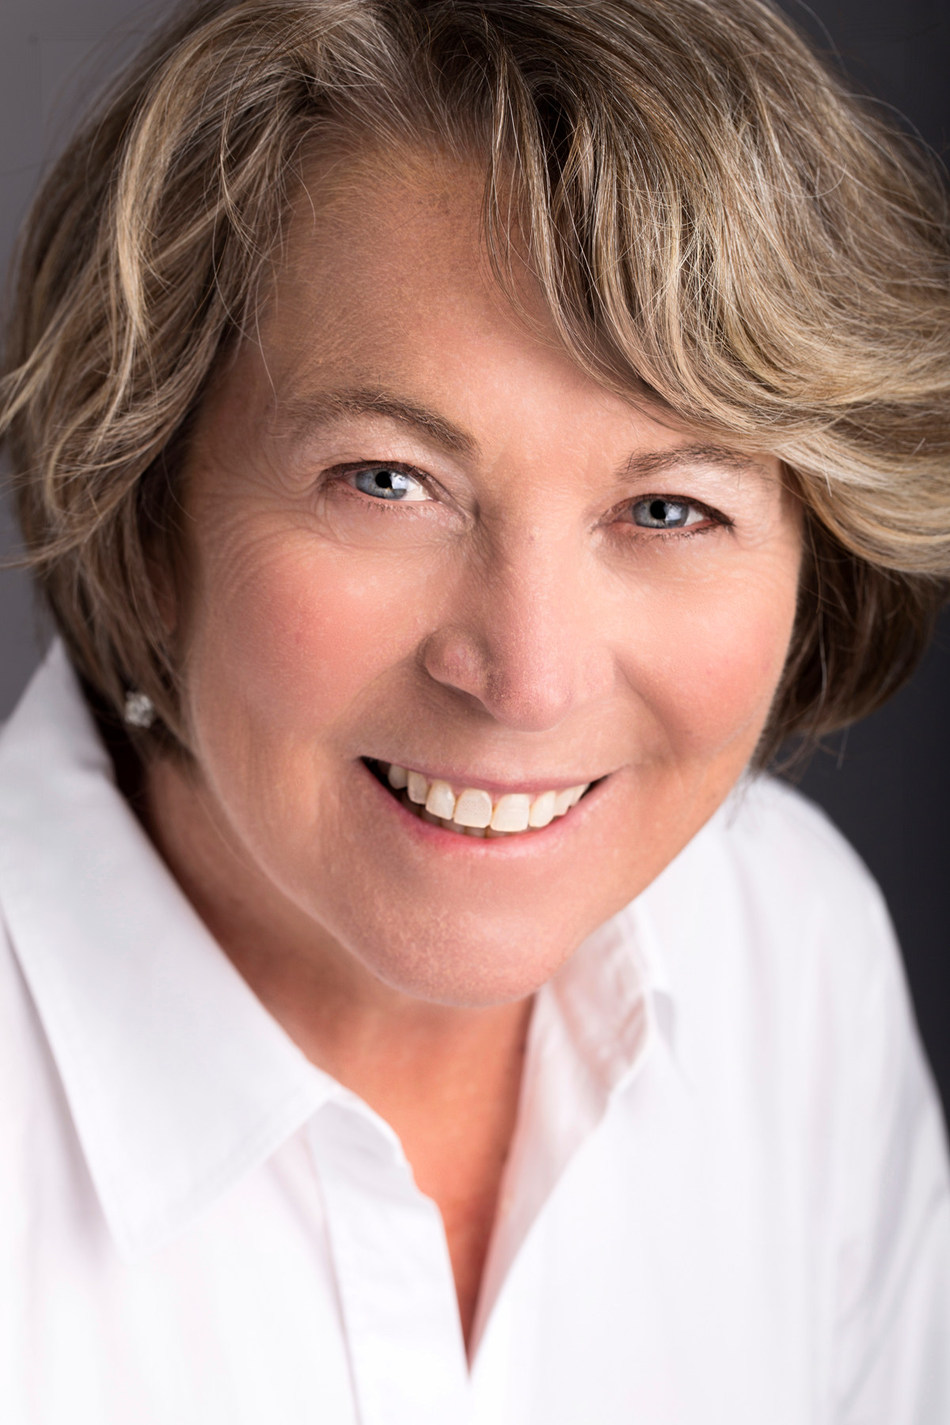 LendingClub Board Member and author of 'Powerful: Building a Culture of Freedom and Responsibility,' Patty McCord